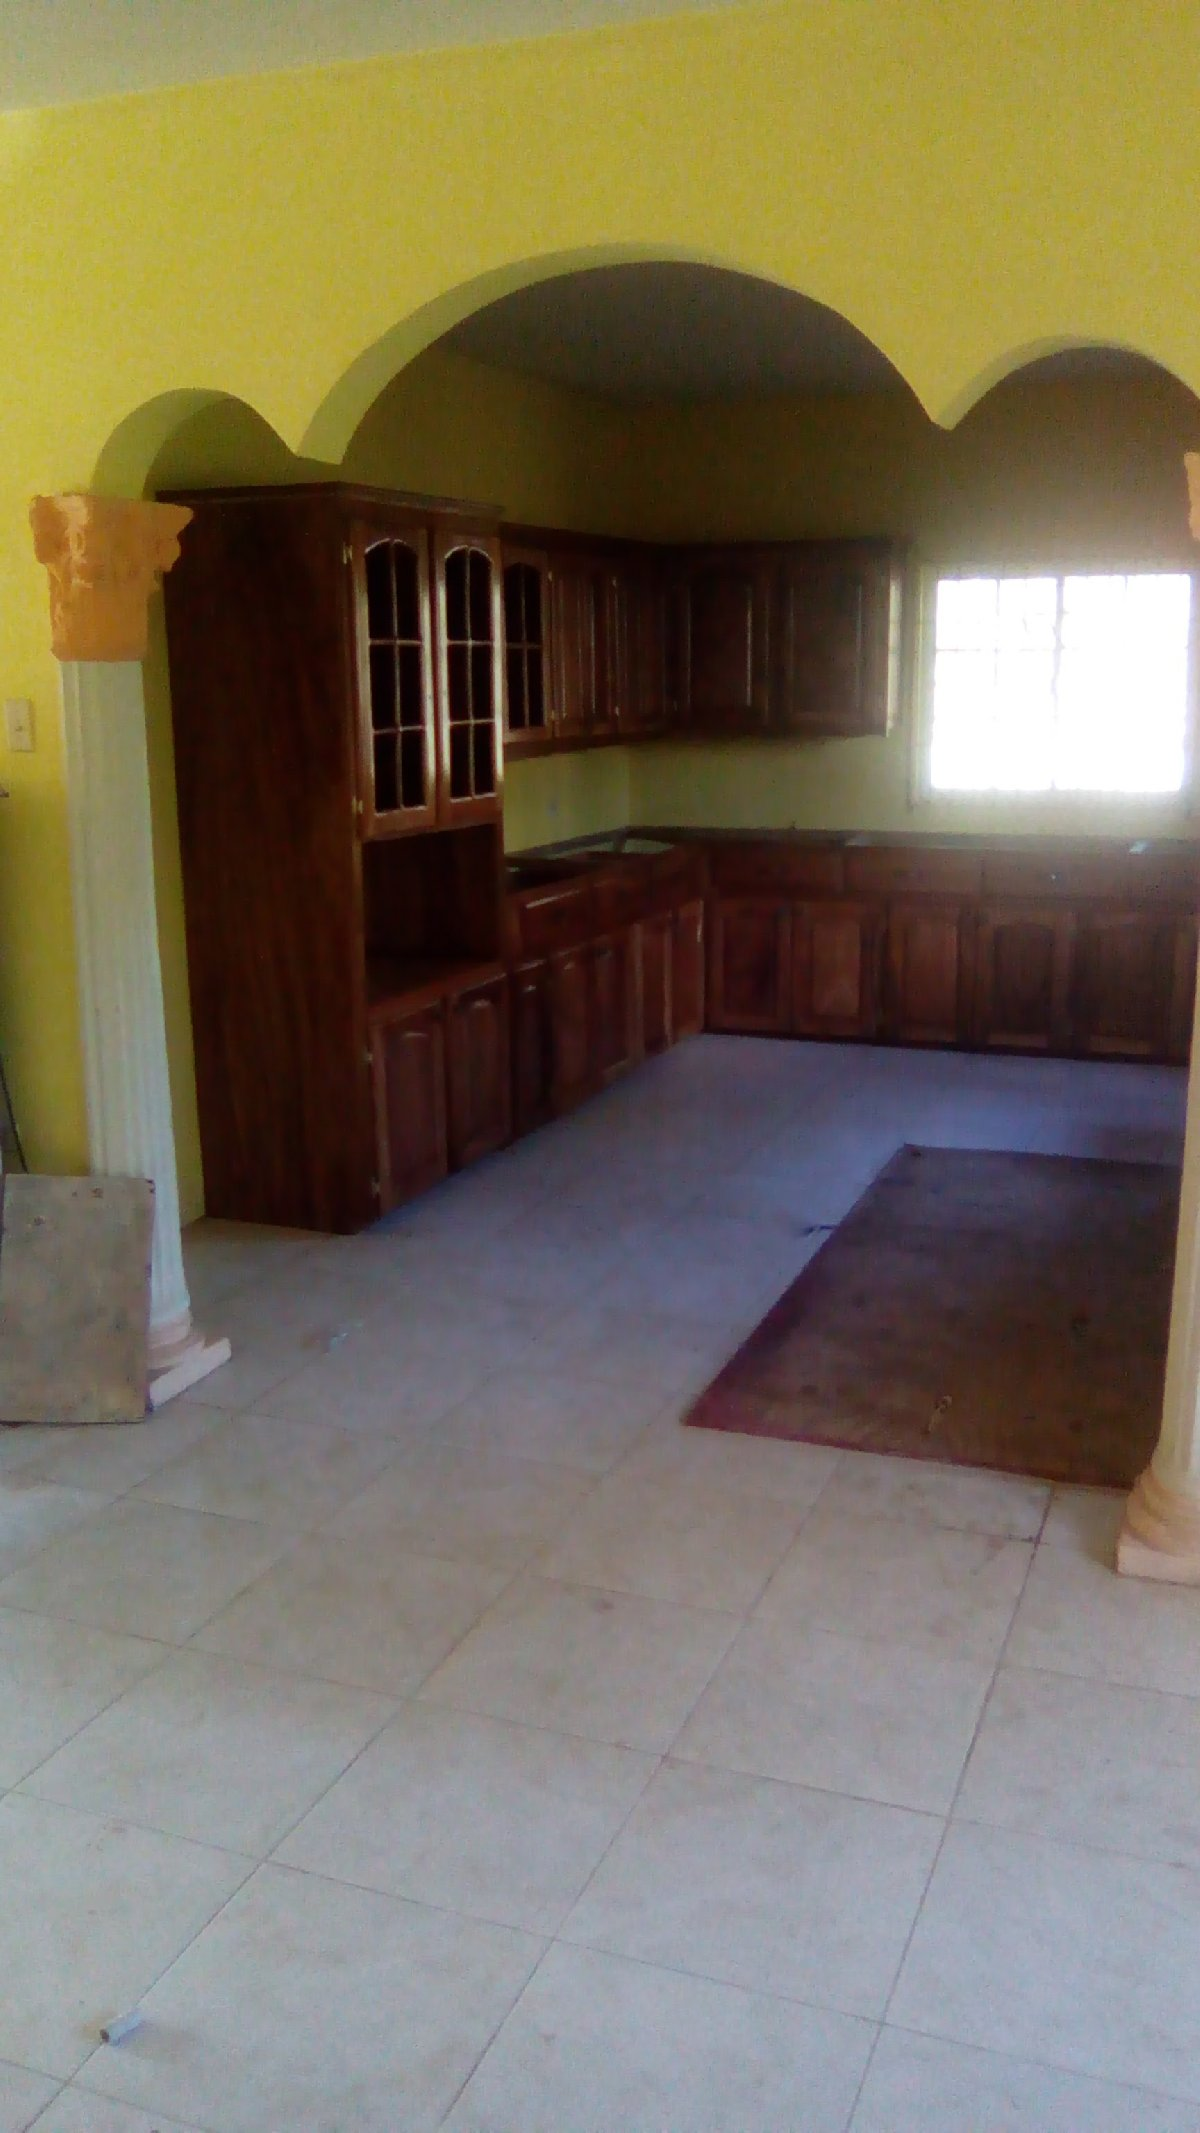 7 Bedroom House For Rent: 7 Bedroom 4 Bathroom House Recently Built For Sale In